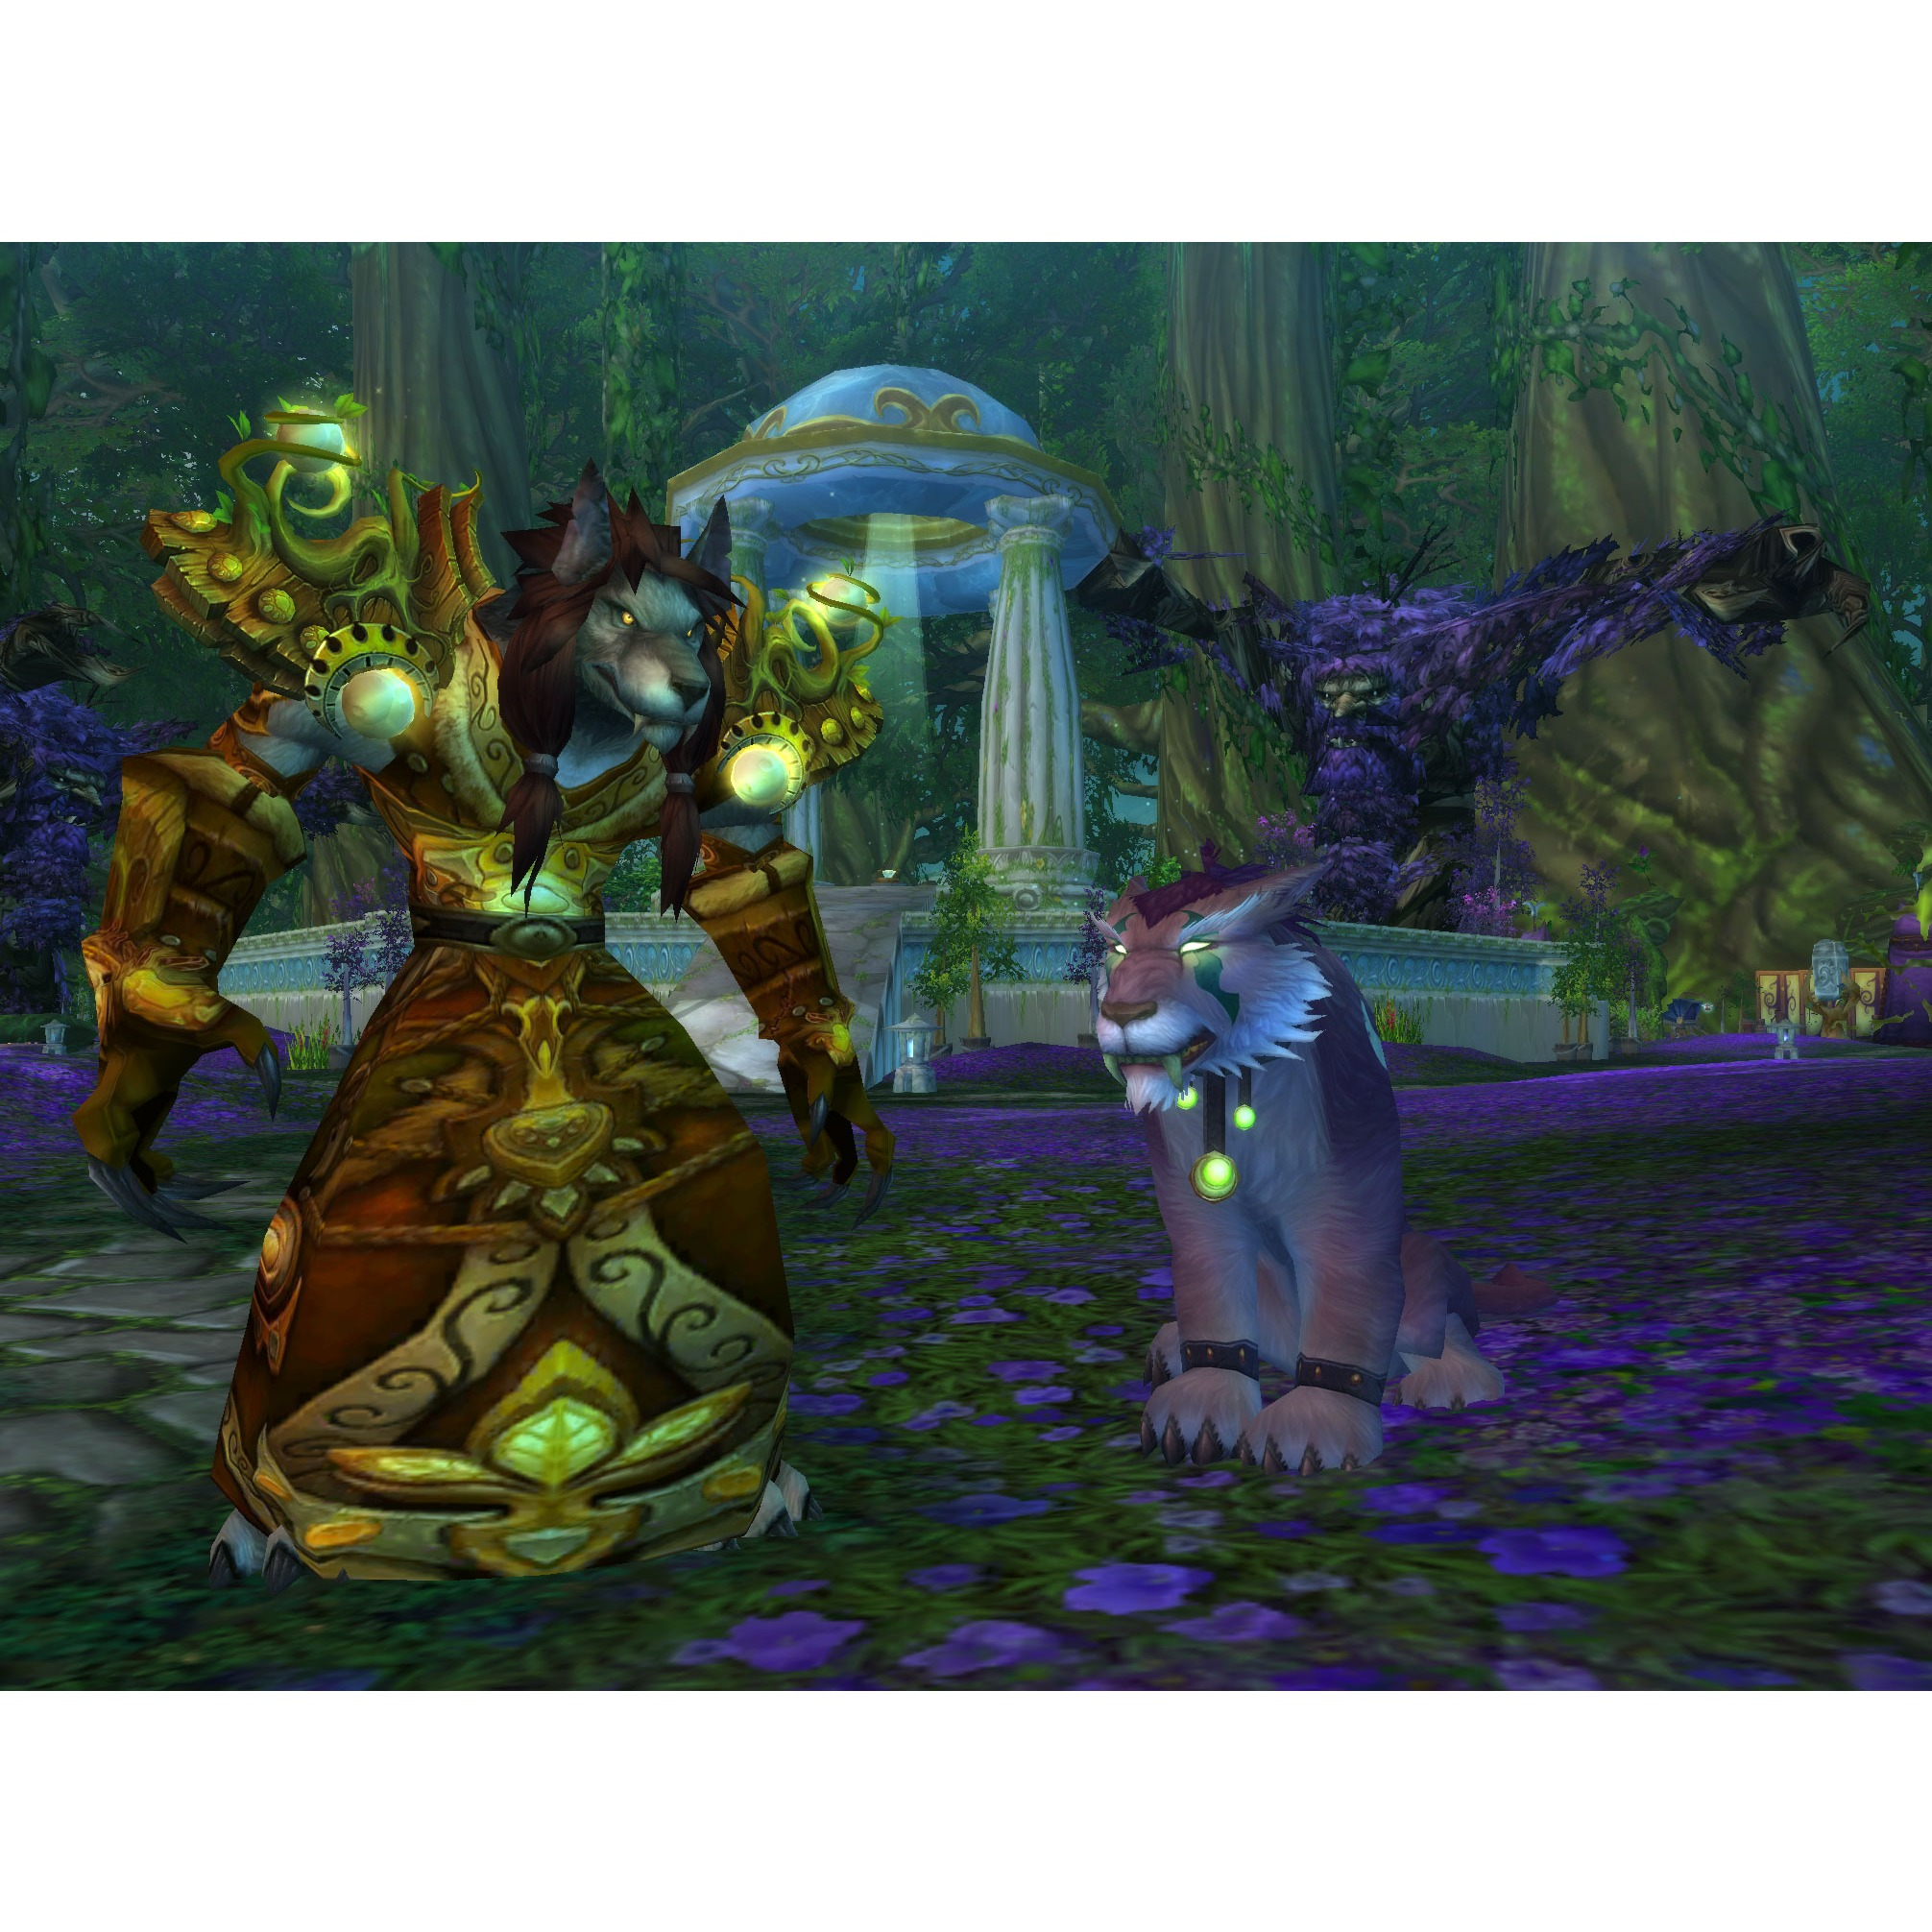 World of warcraft cataclysm edition collector pc mac add on pour world of warcraft jeux - World of warcraft sur console ...